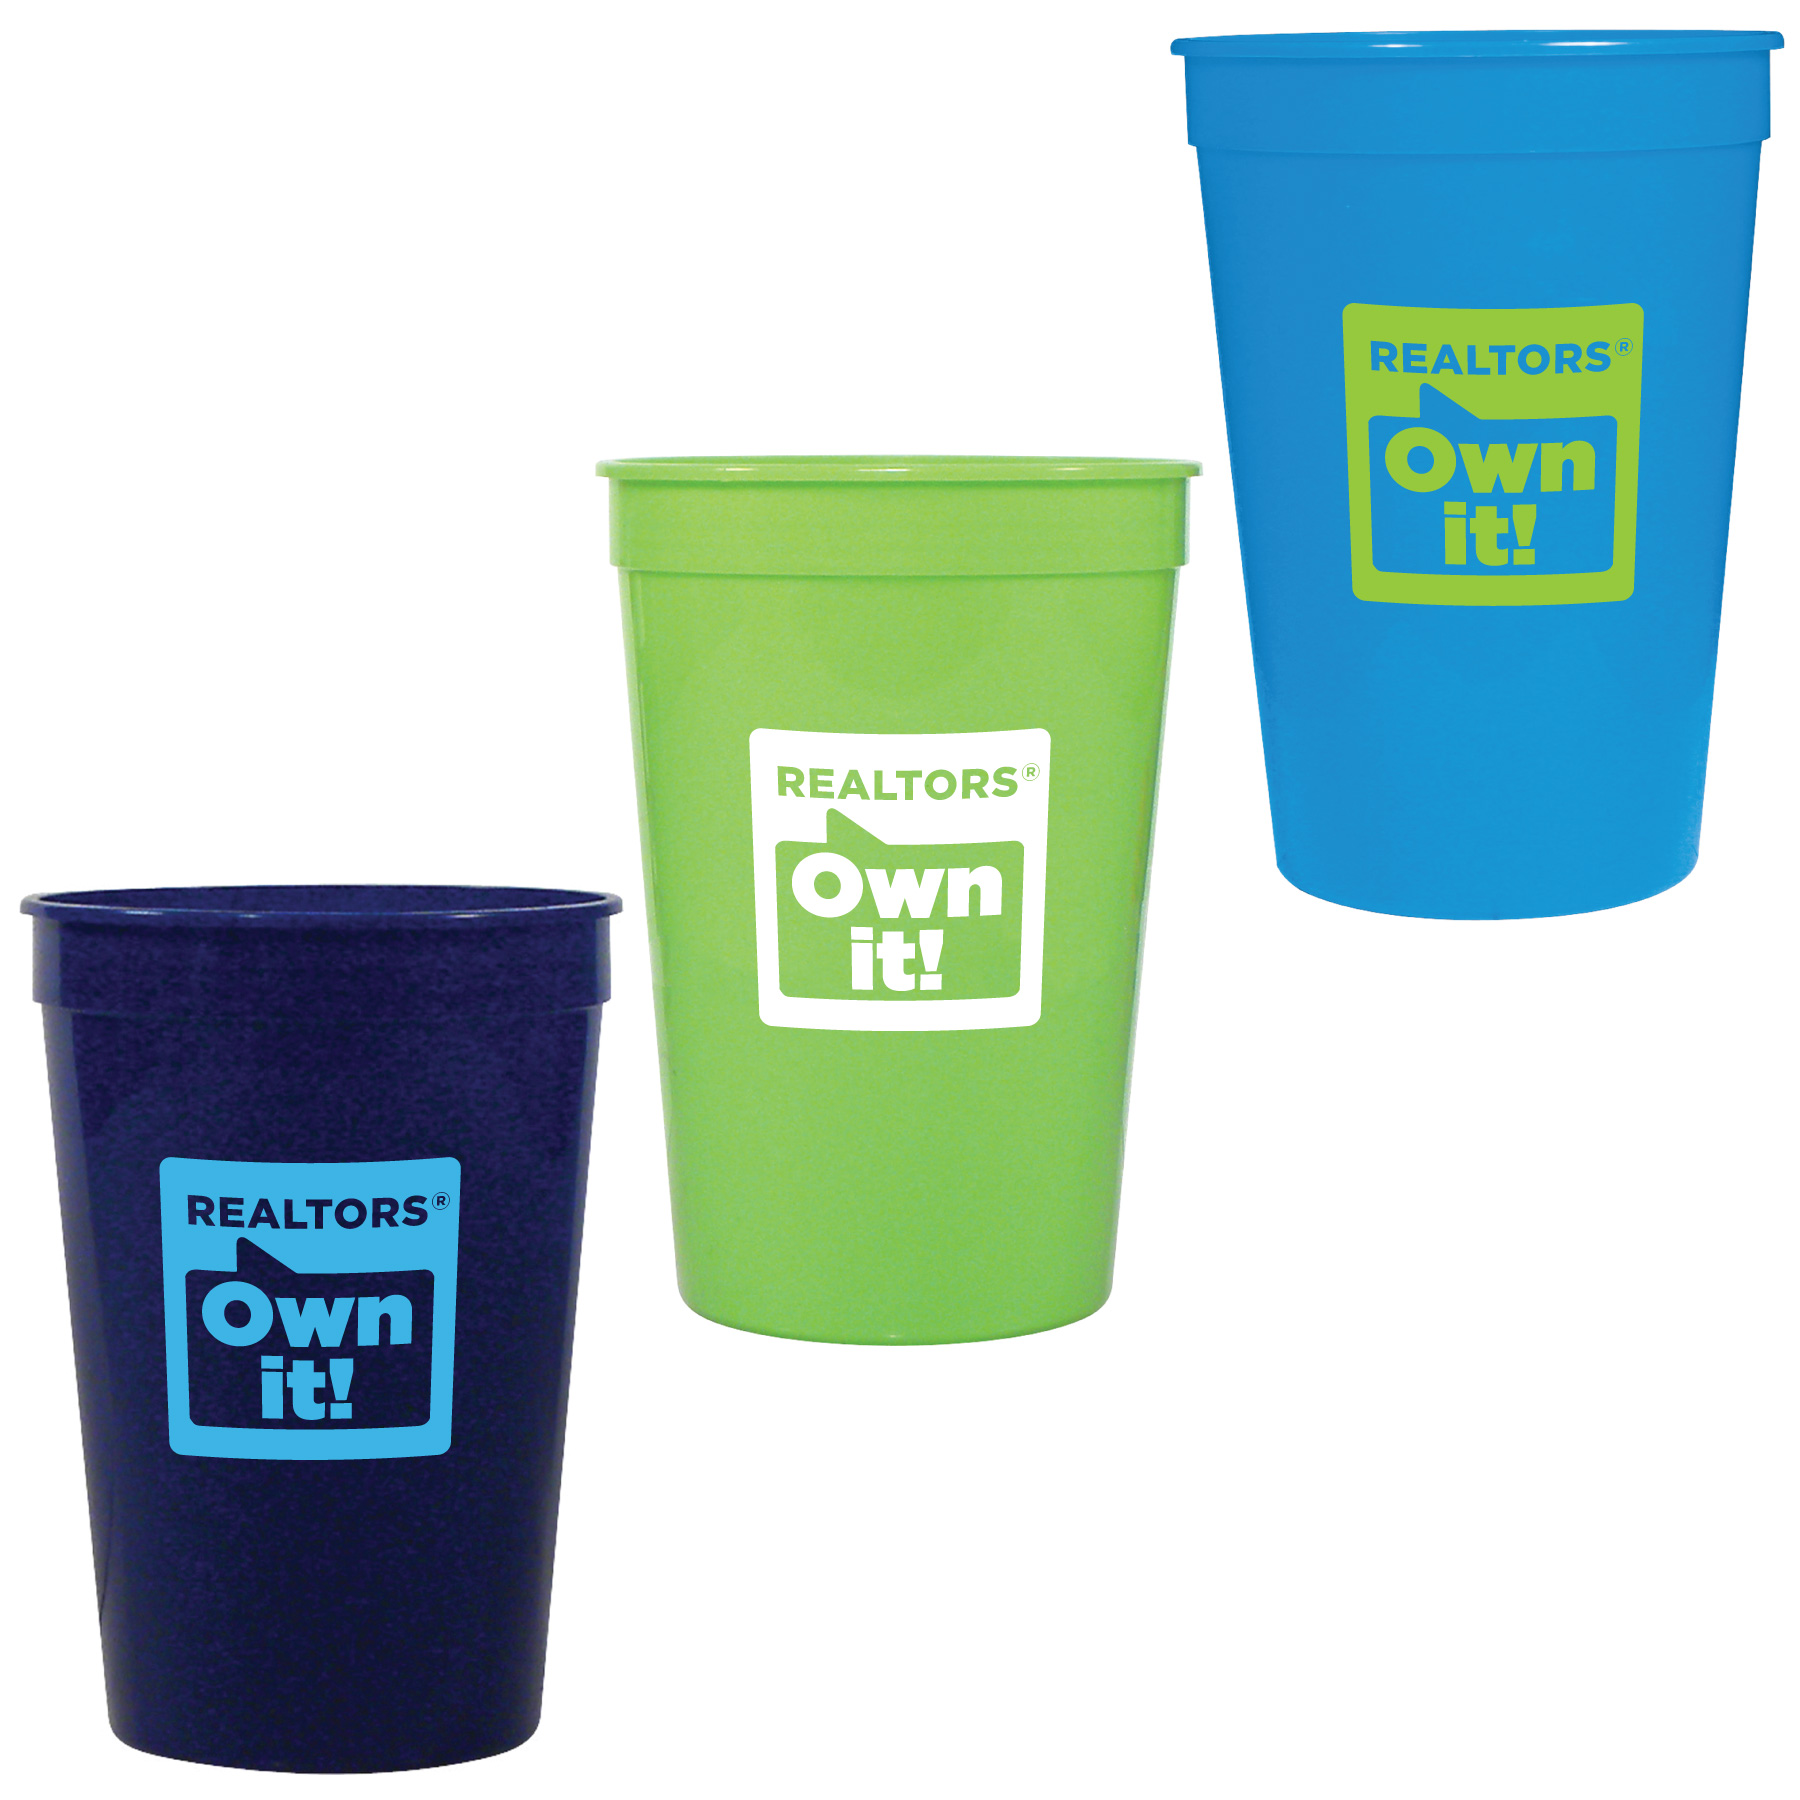 REALTORS® Own It! Stadium Cup (Special Order) Cups,Mugs,Tumblers,Drinks,Drinkwares,glasses,glass